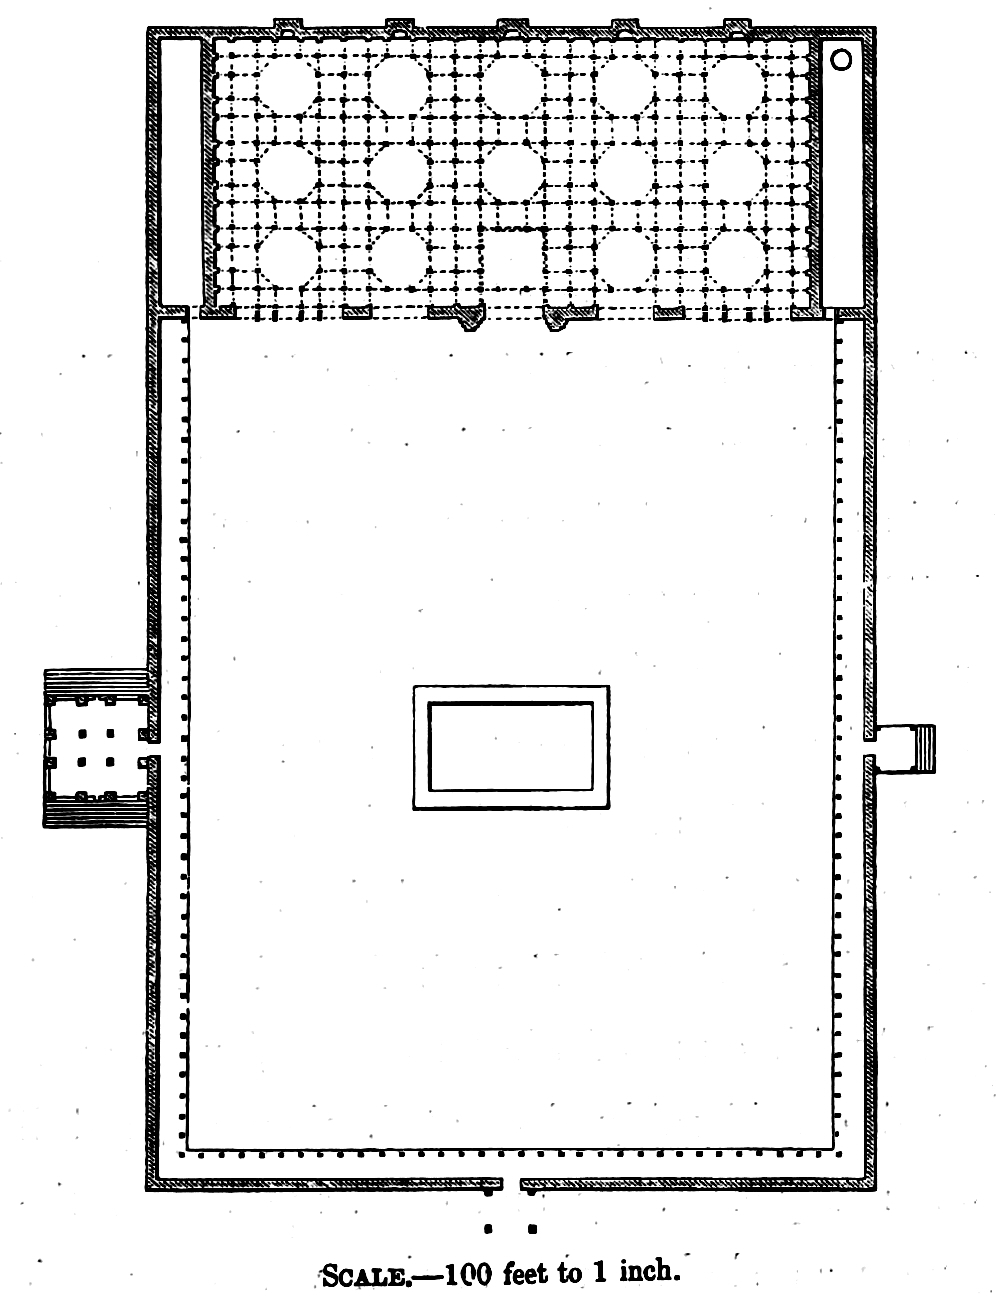 Plan Elevation Section Of Mosque : Pics for gt jama masjid plan